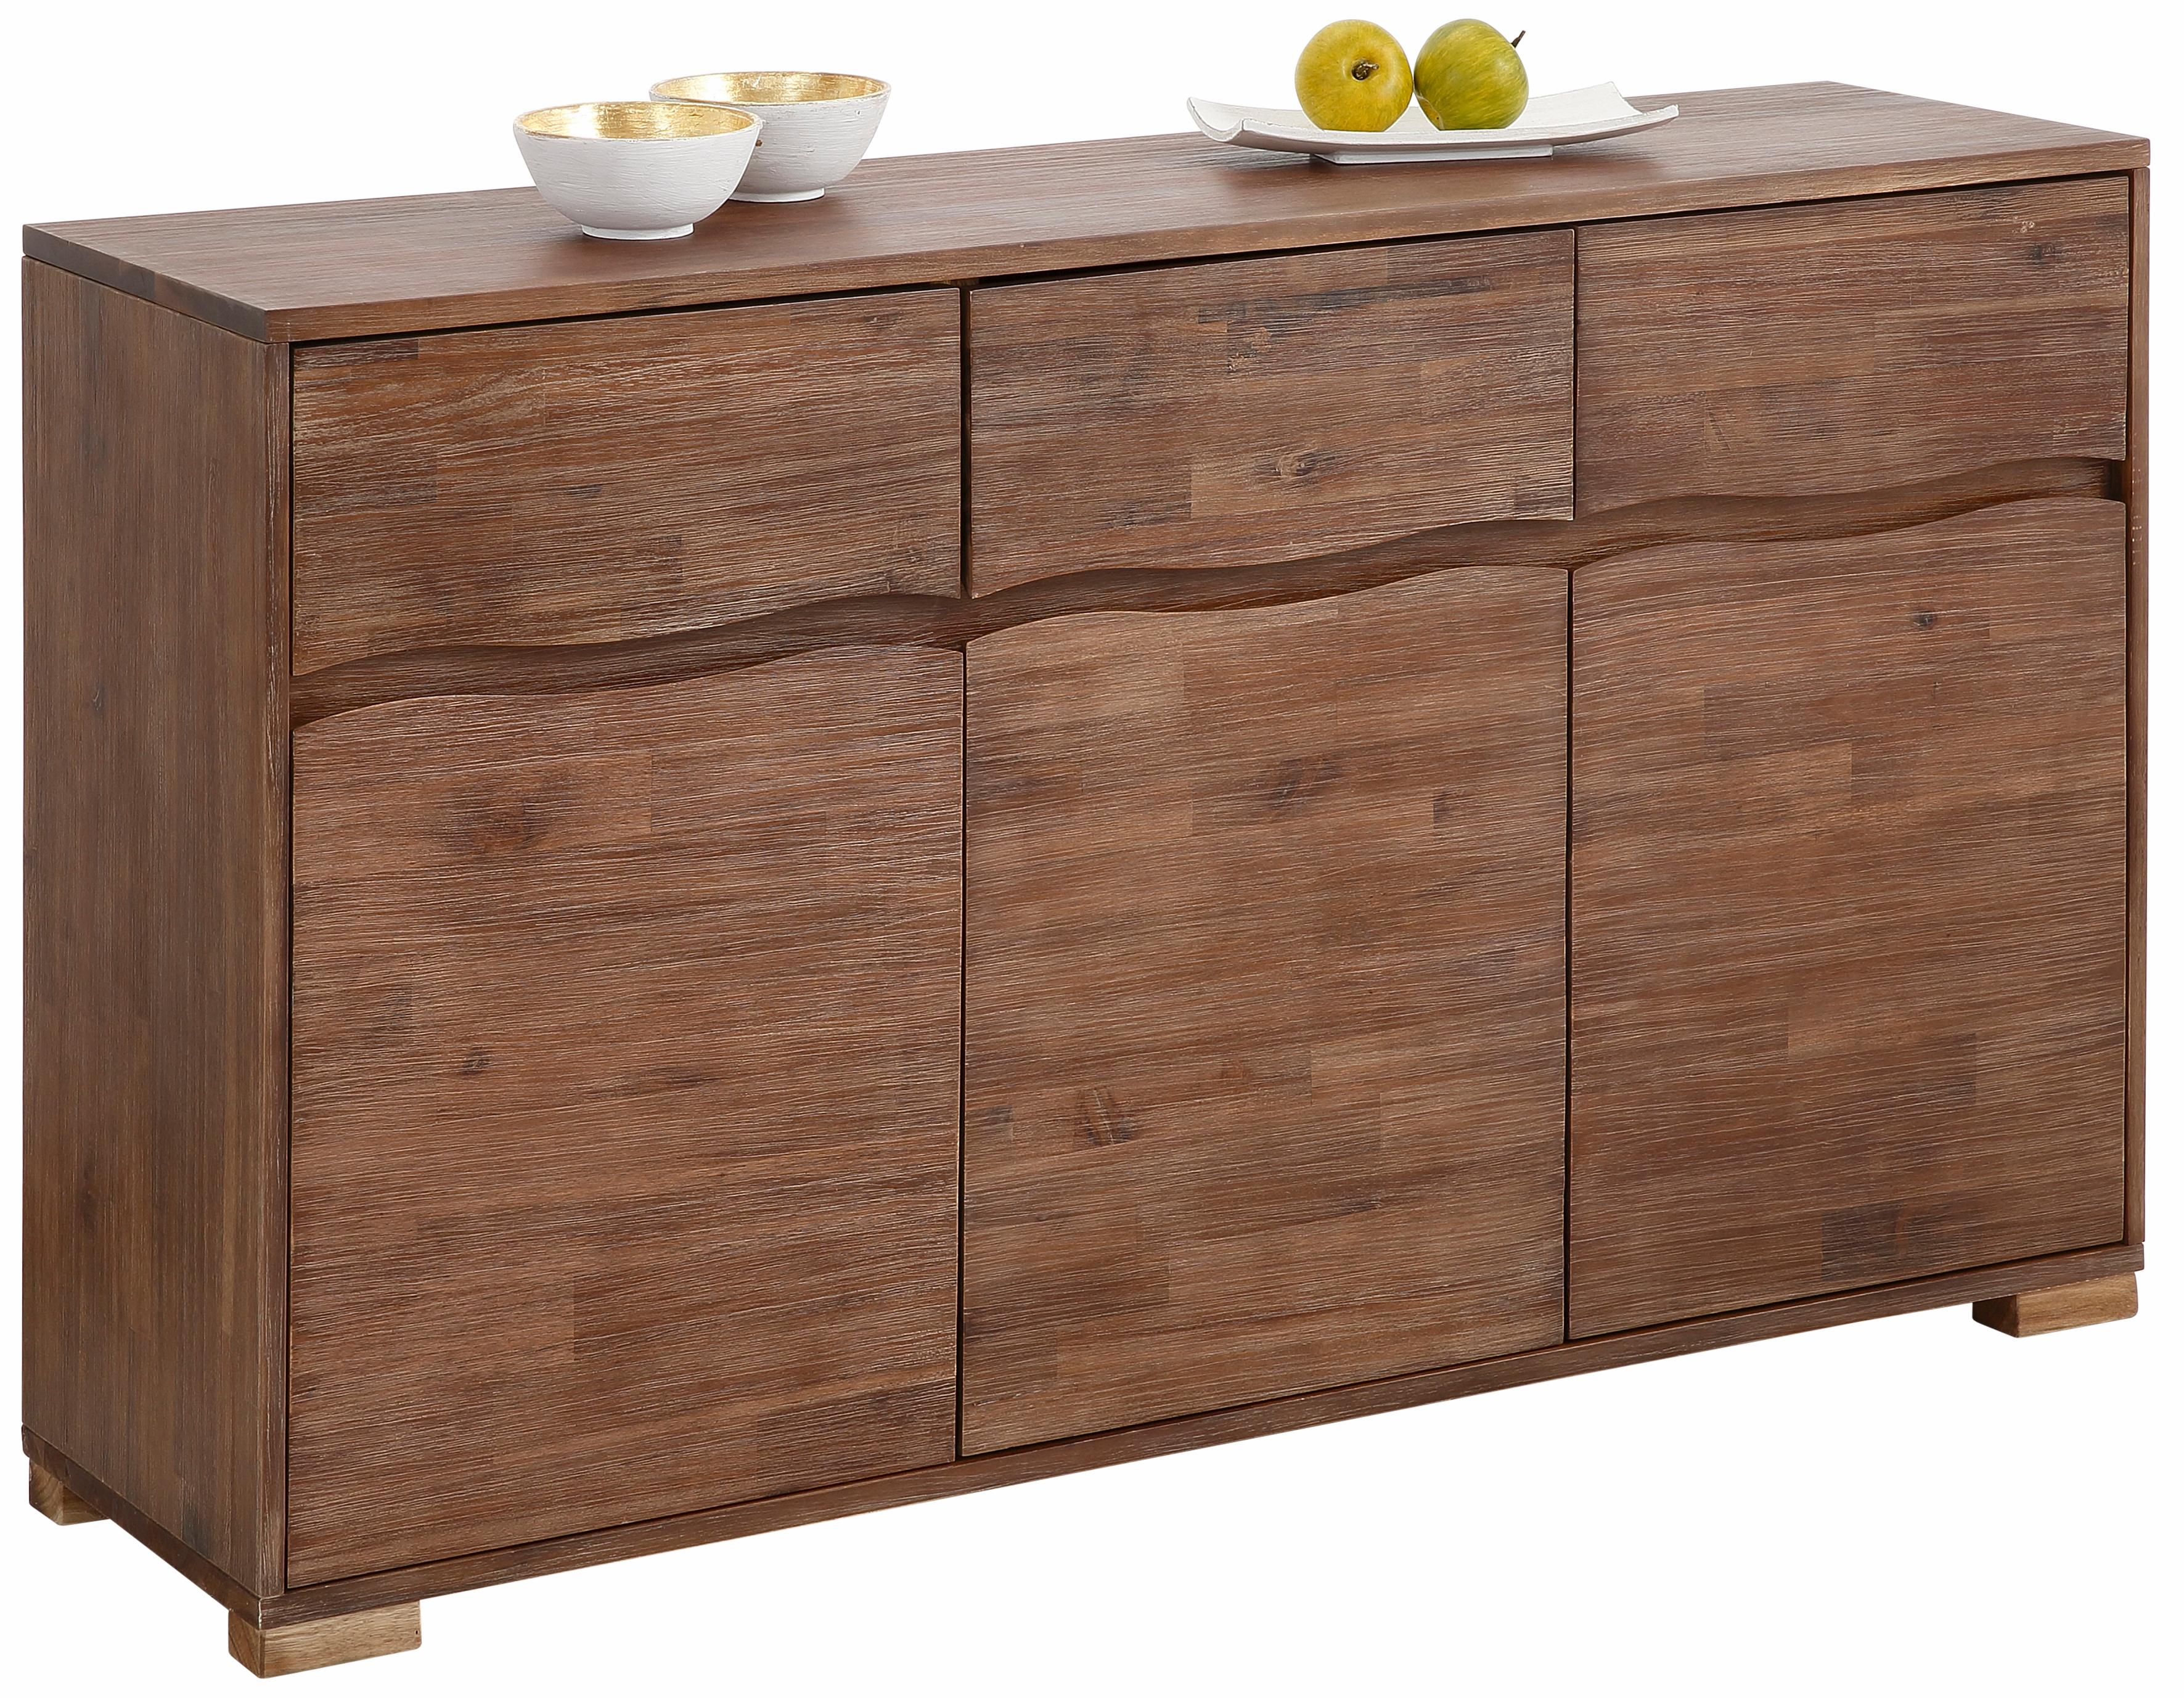 Home affaire Sideboard Wave